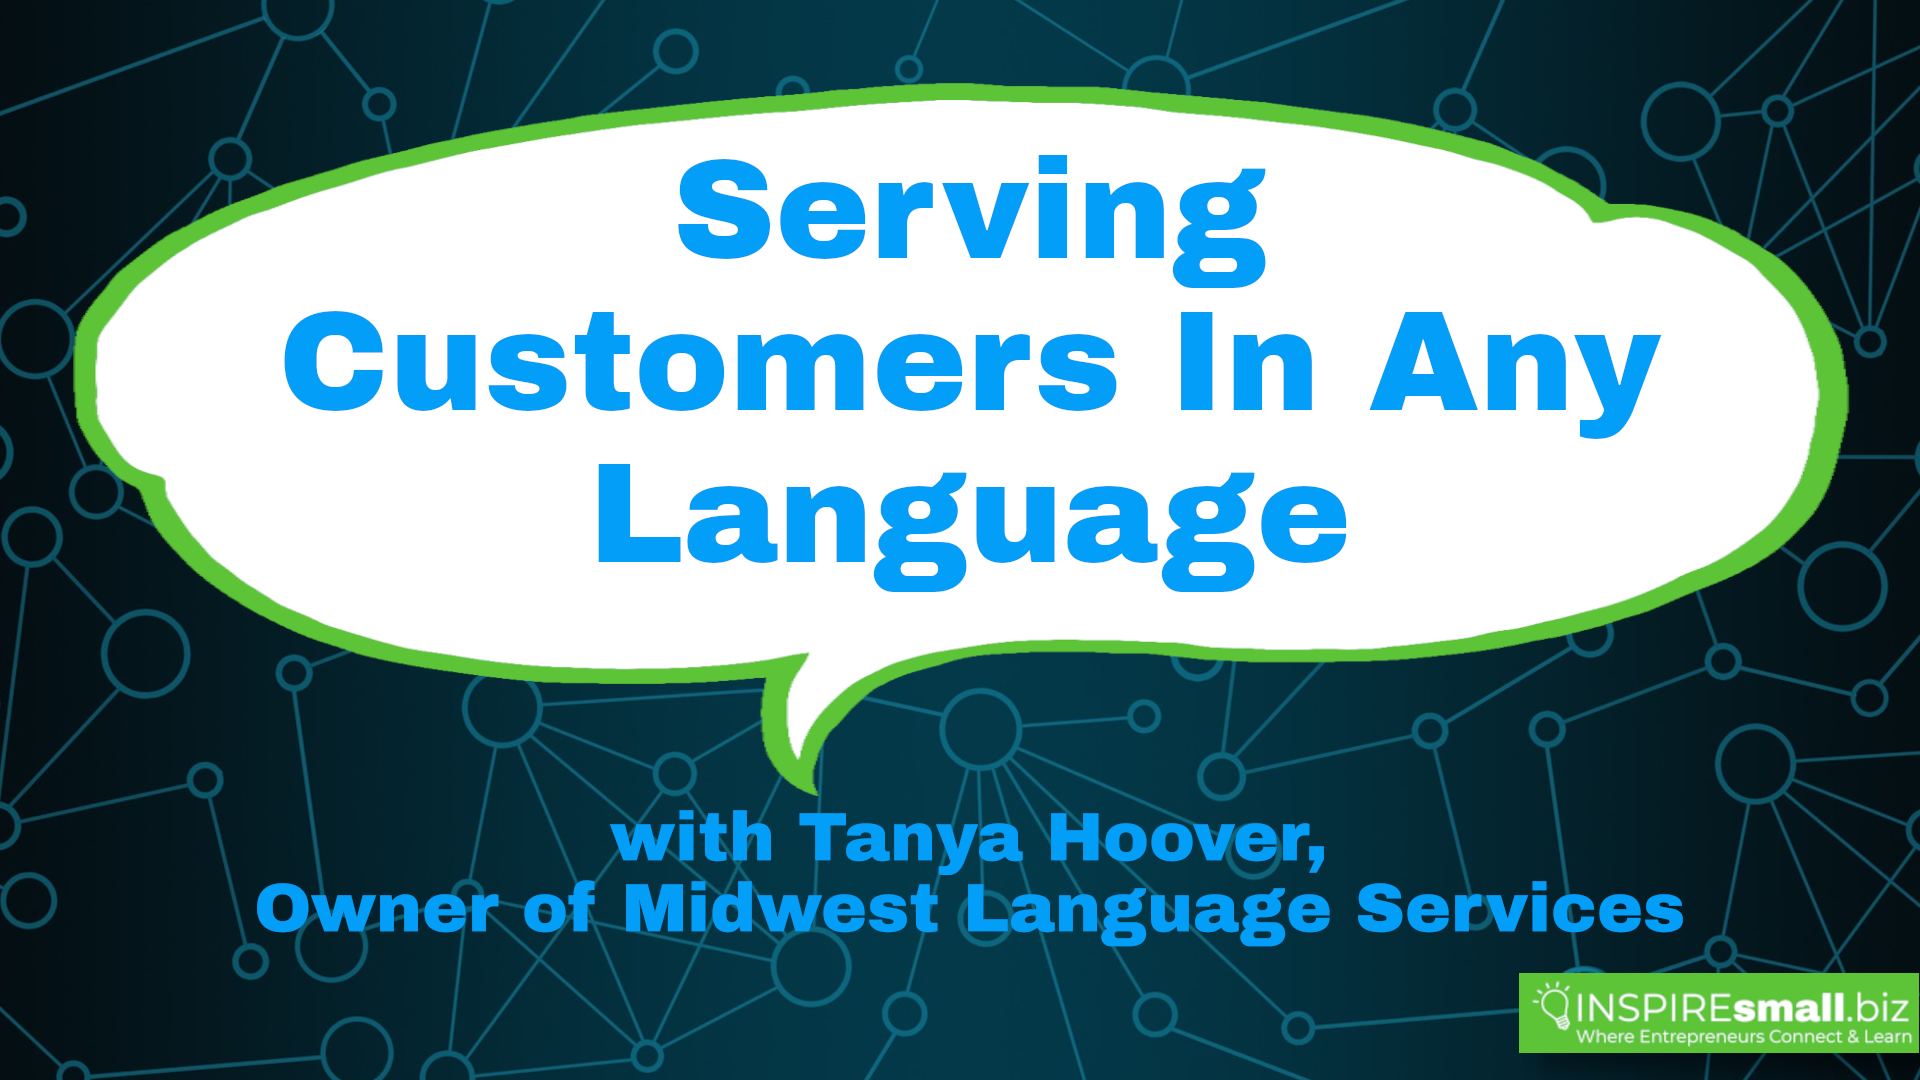 Serving Customers In Any Language - INSPIREsmall.biz Monday Networking